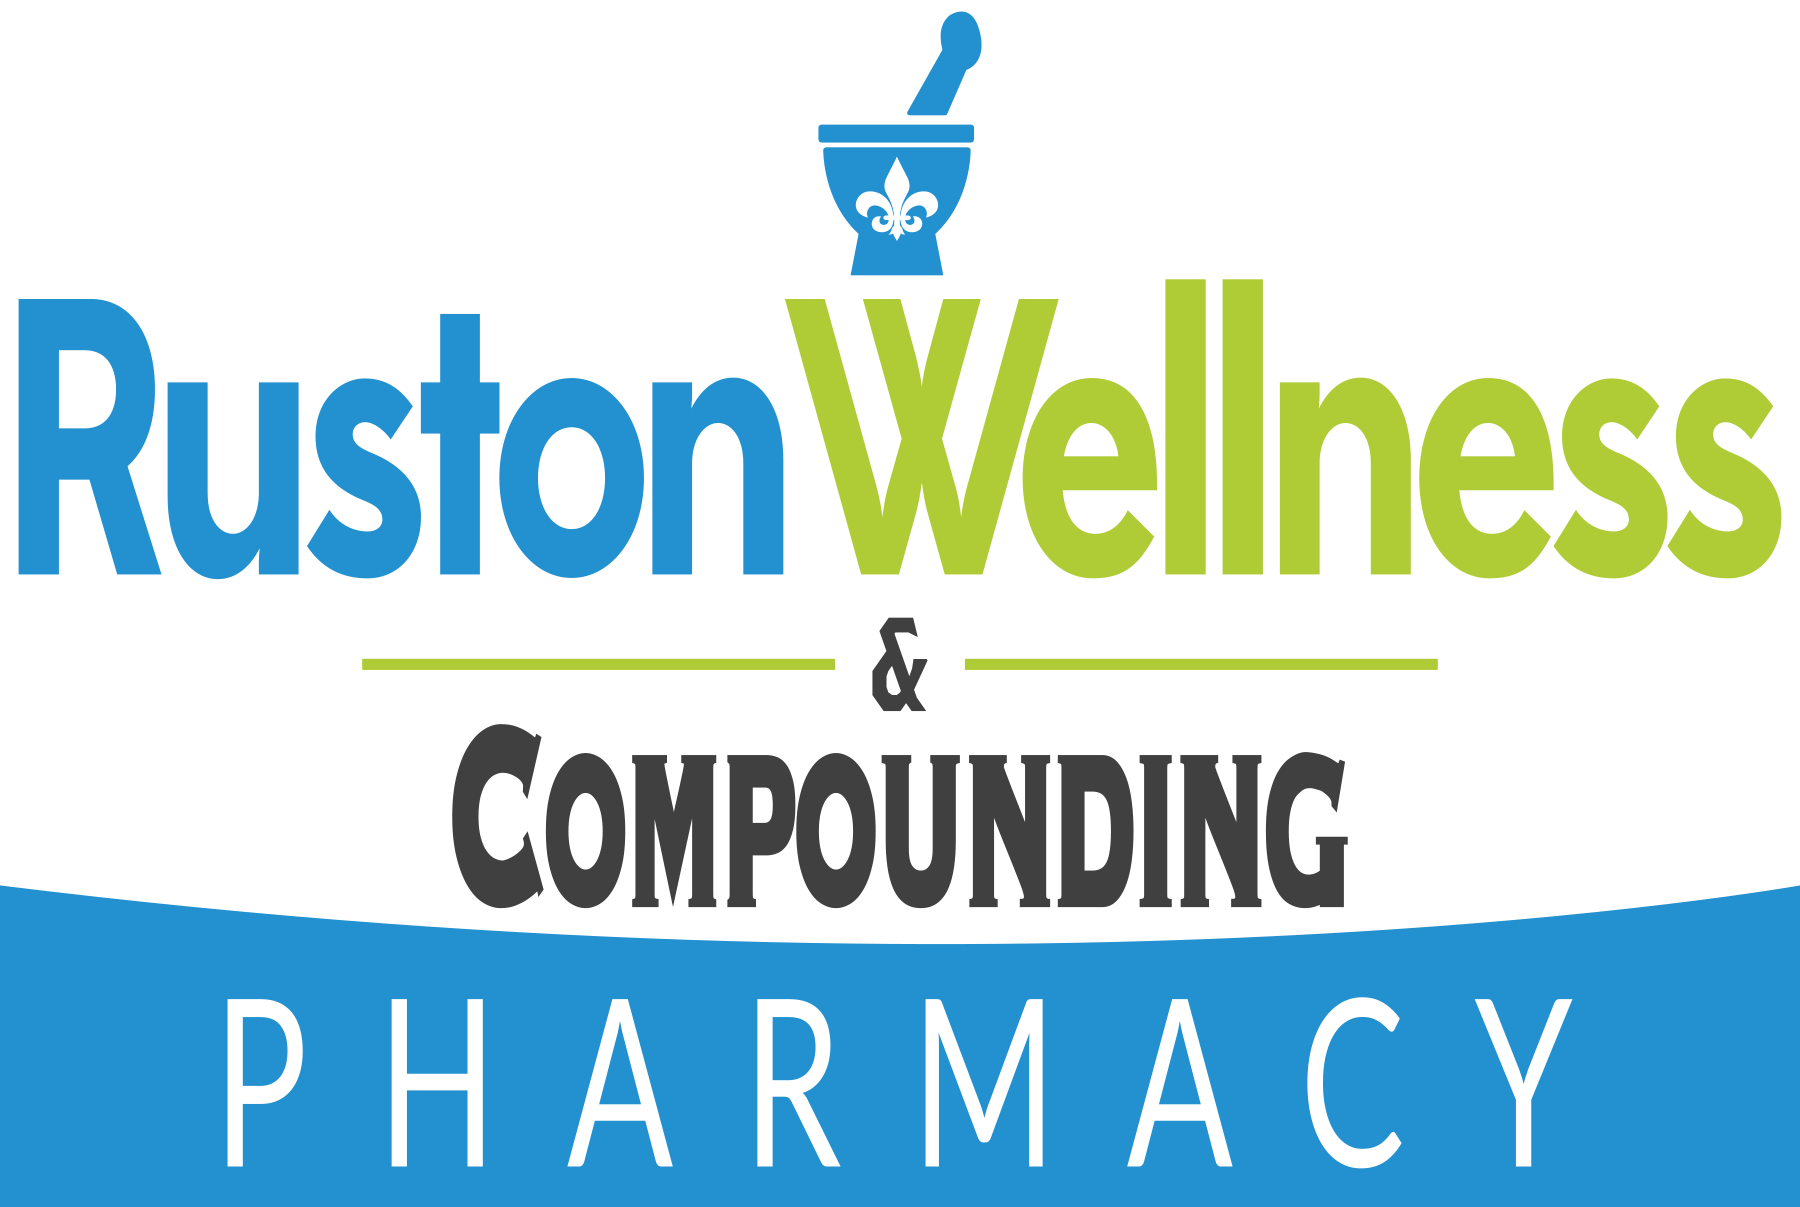 Ruston Wellness & Compounding